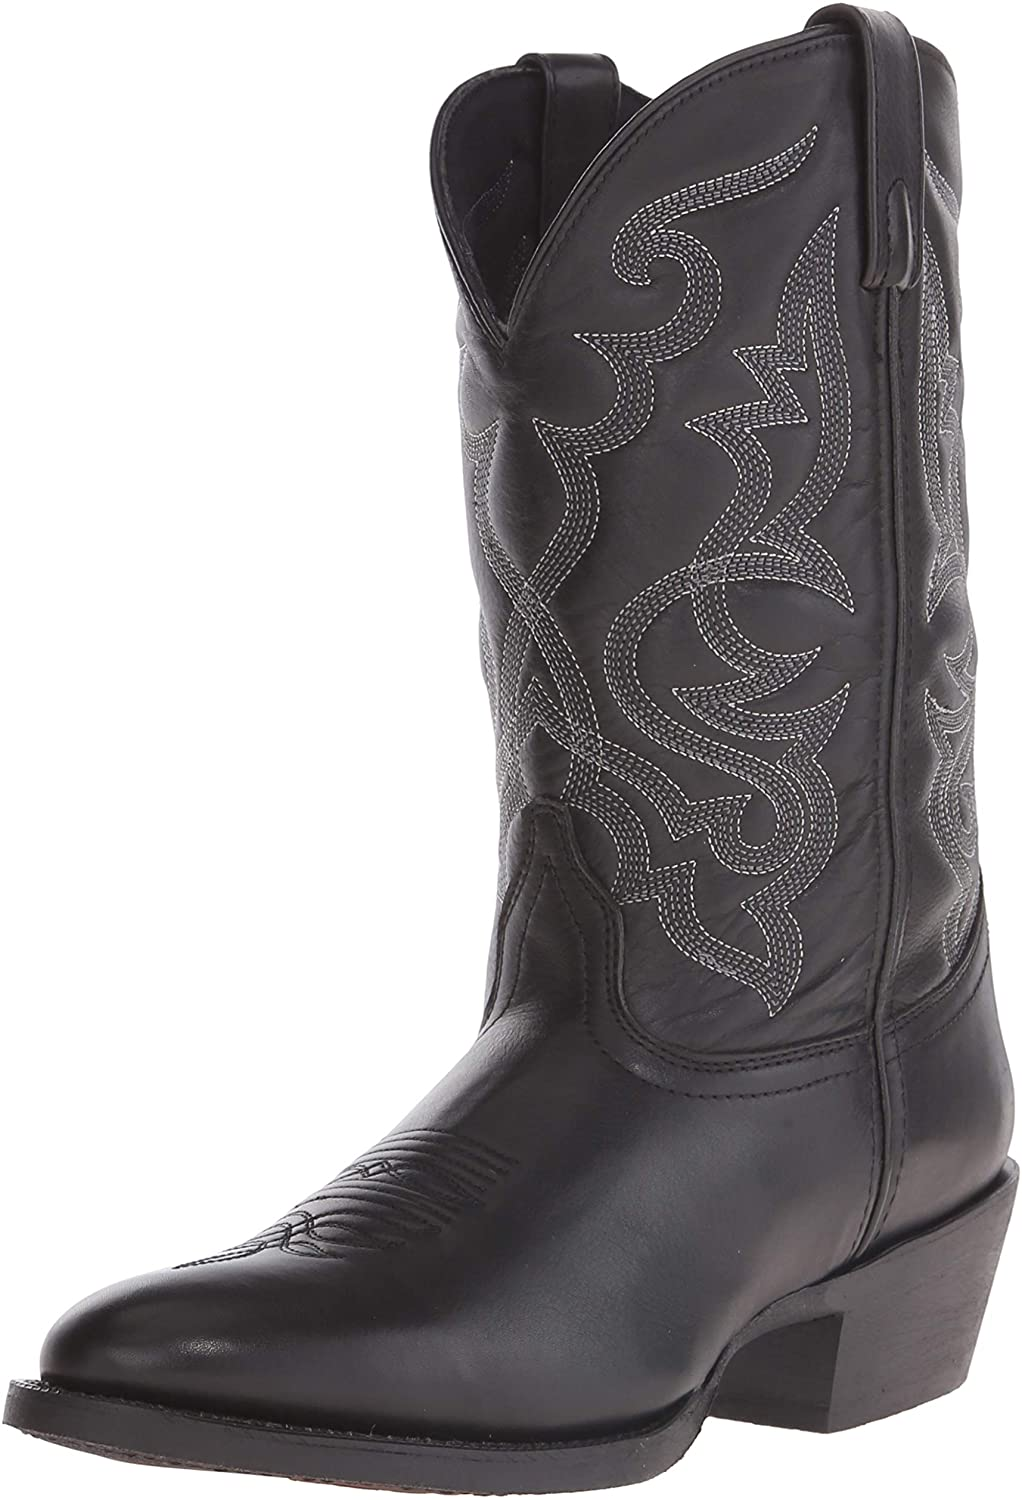 Laredo Womens Maddie New Charlotte Mall Shipping Free Round Toe Western Mid Boots Low Calf Cowboy